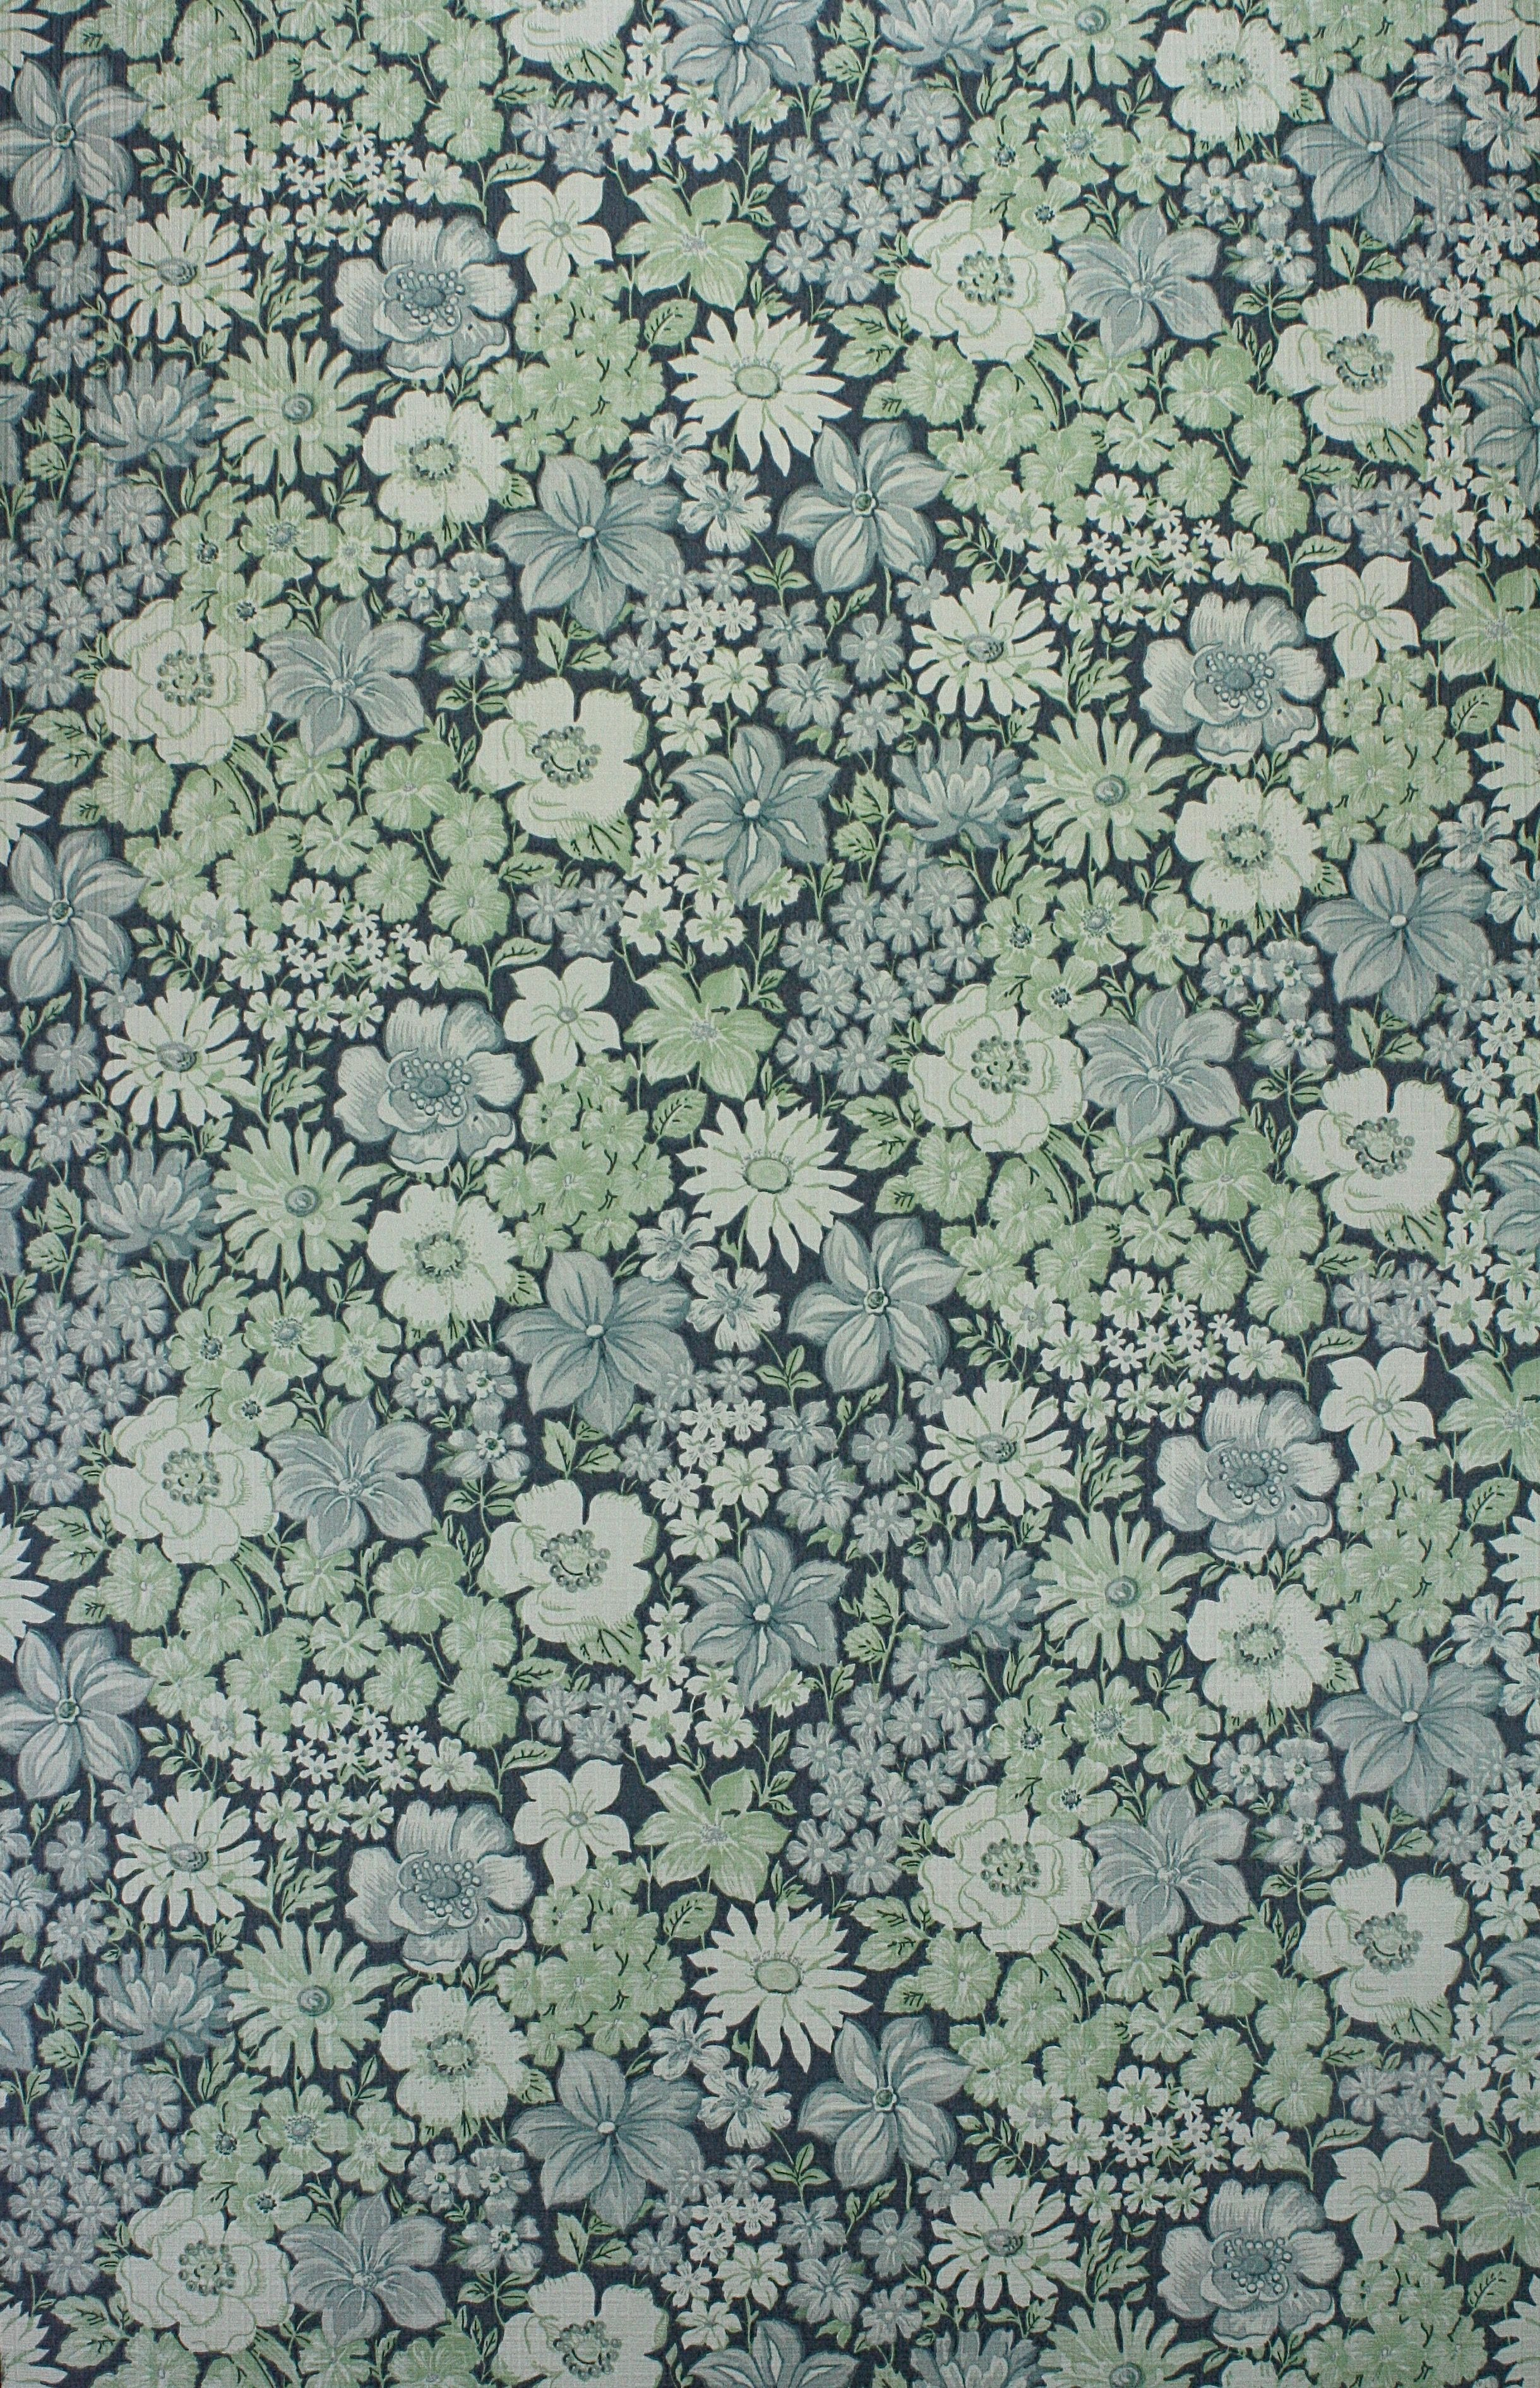 Vintage Blue Floral Wallpaper In 2020 Blue Floral Wallpaper